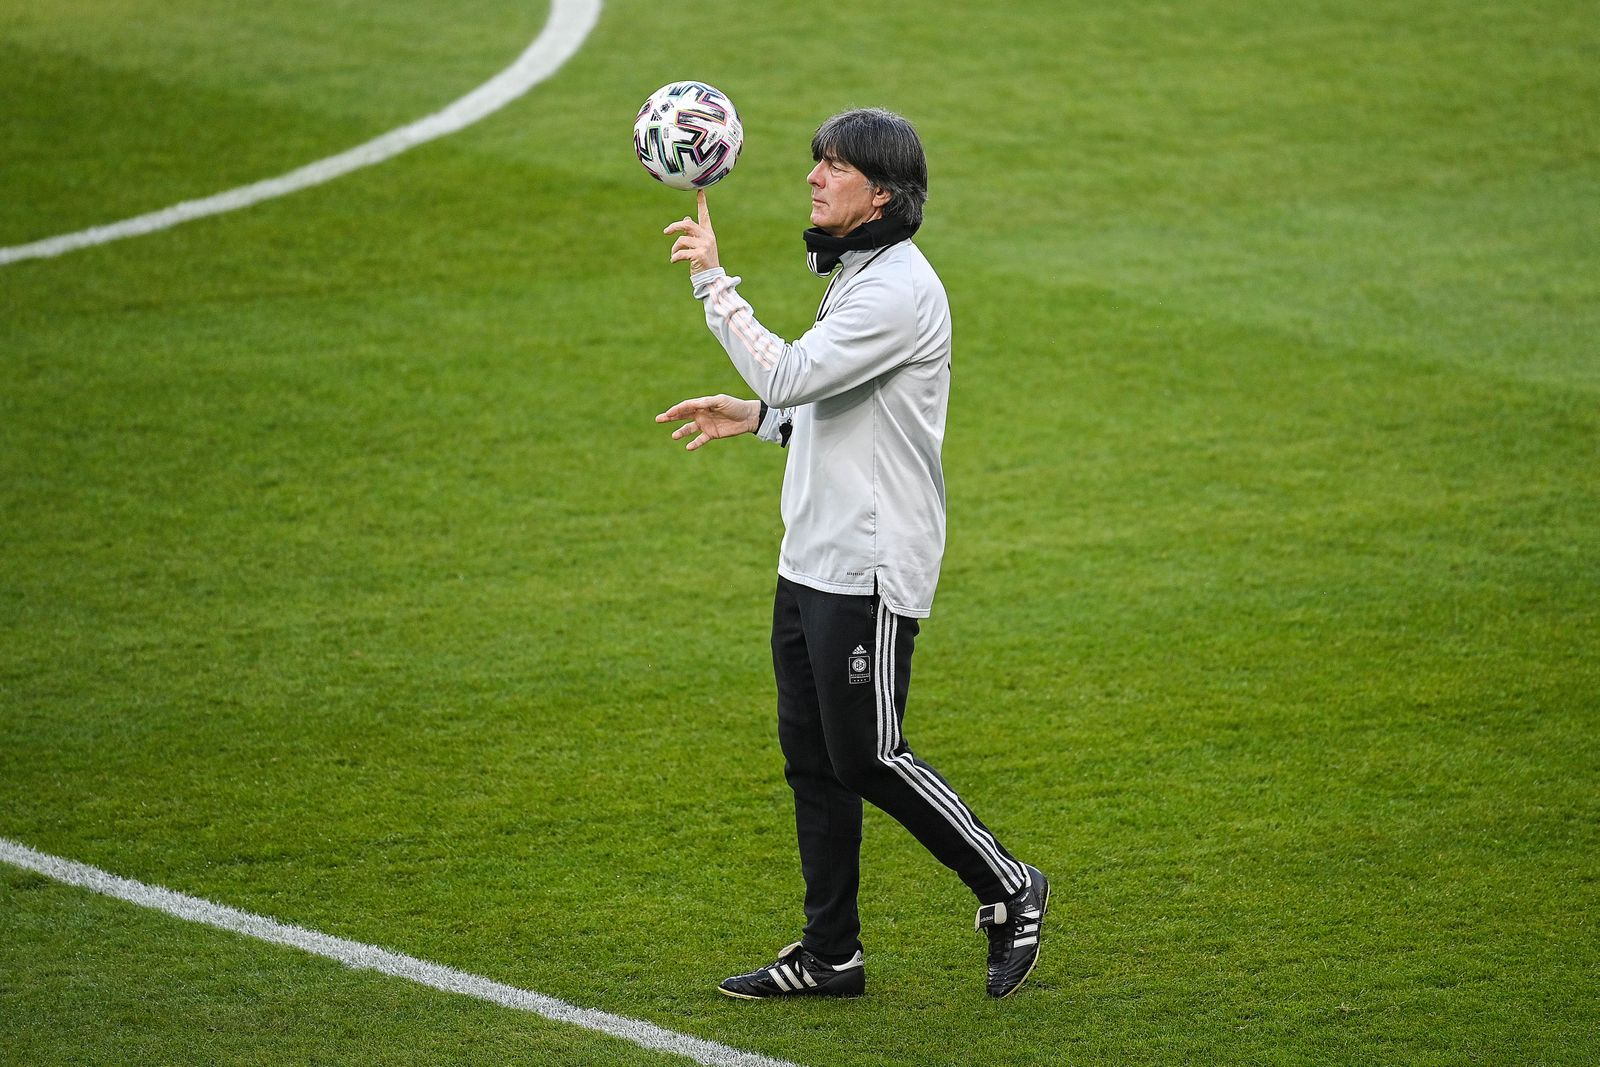 (SP)GERMANY-DUISBURG-FOOTBALL-FIFA 2022 WORLD CUP QUALIFIERS-GERMANY-TRAINING SESSION